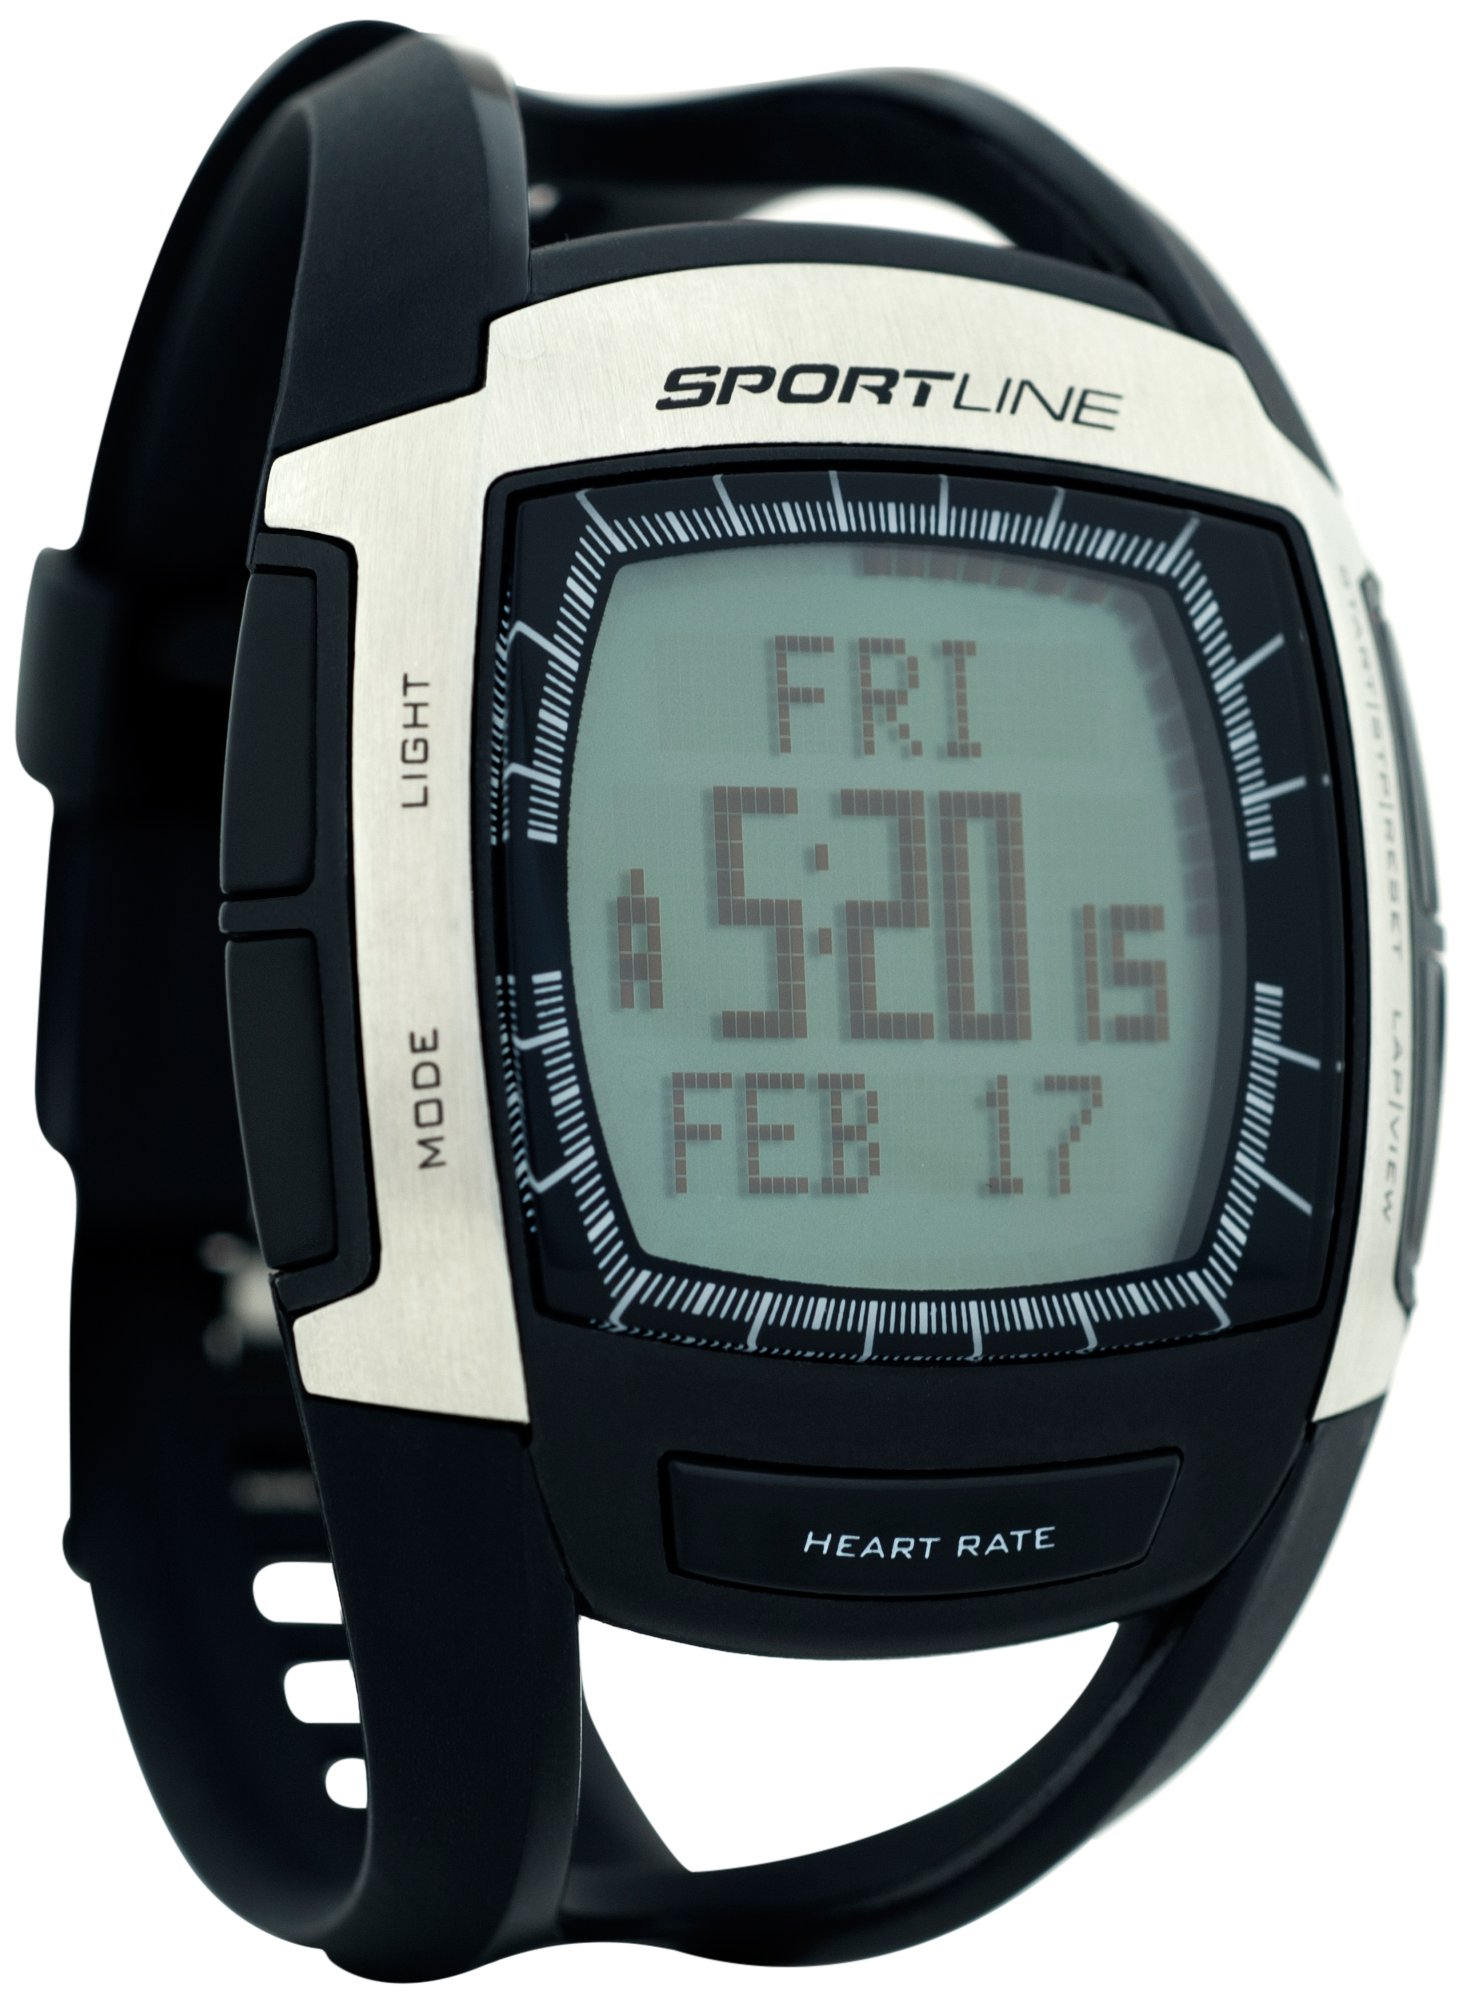 Sportline 670 Cardio Connect Men's Heart Rate Monitor With Speed and Distance Tracking by Sportline